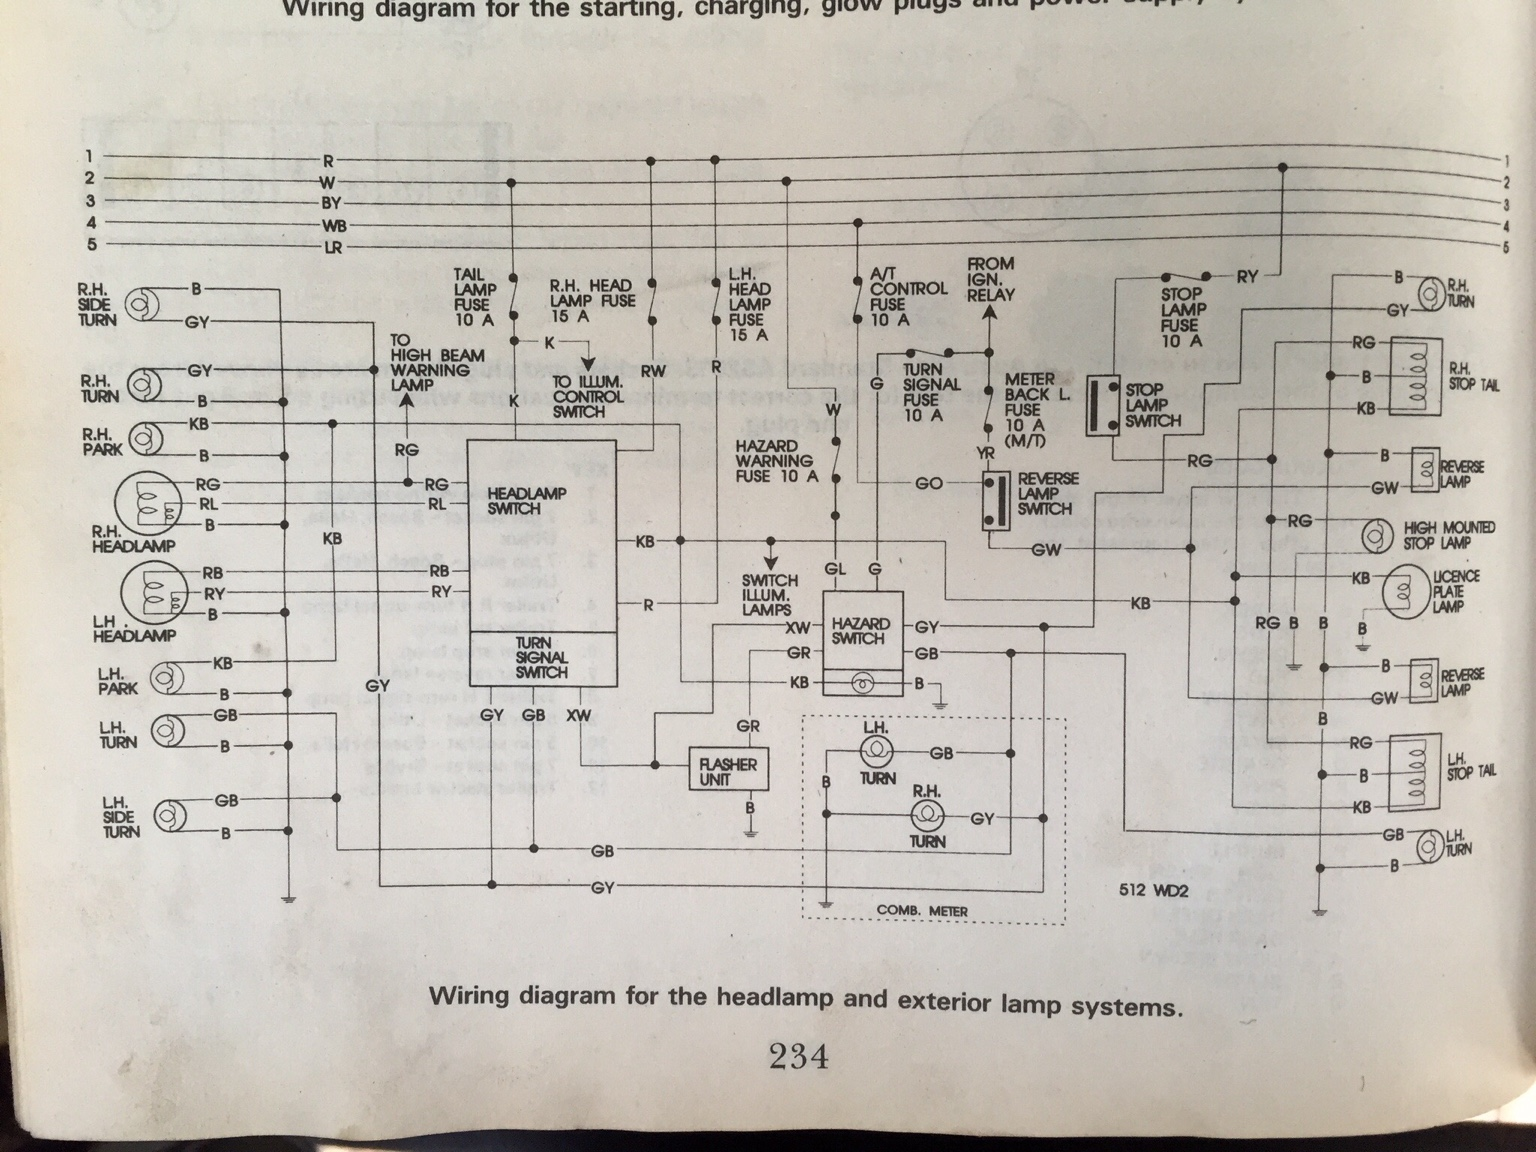 Reverse Light Wiring Diagram from images.tapatalk-cdn.com